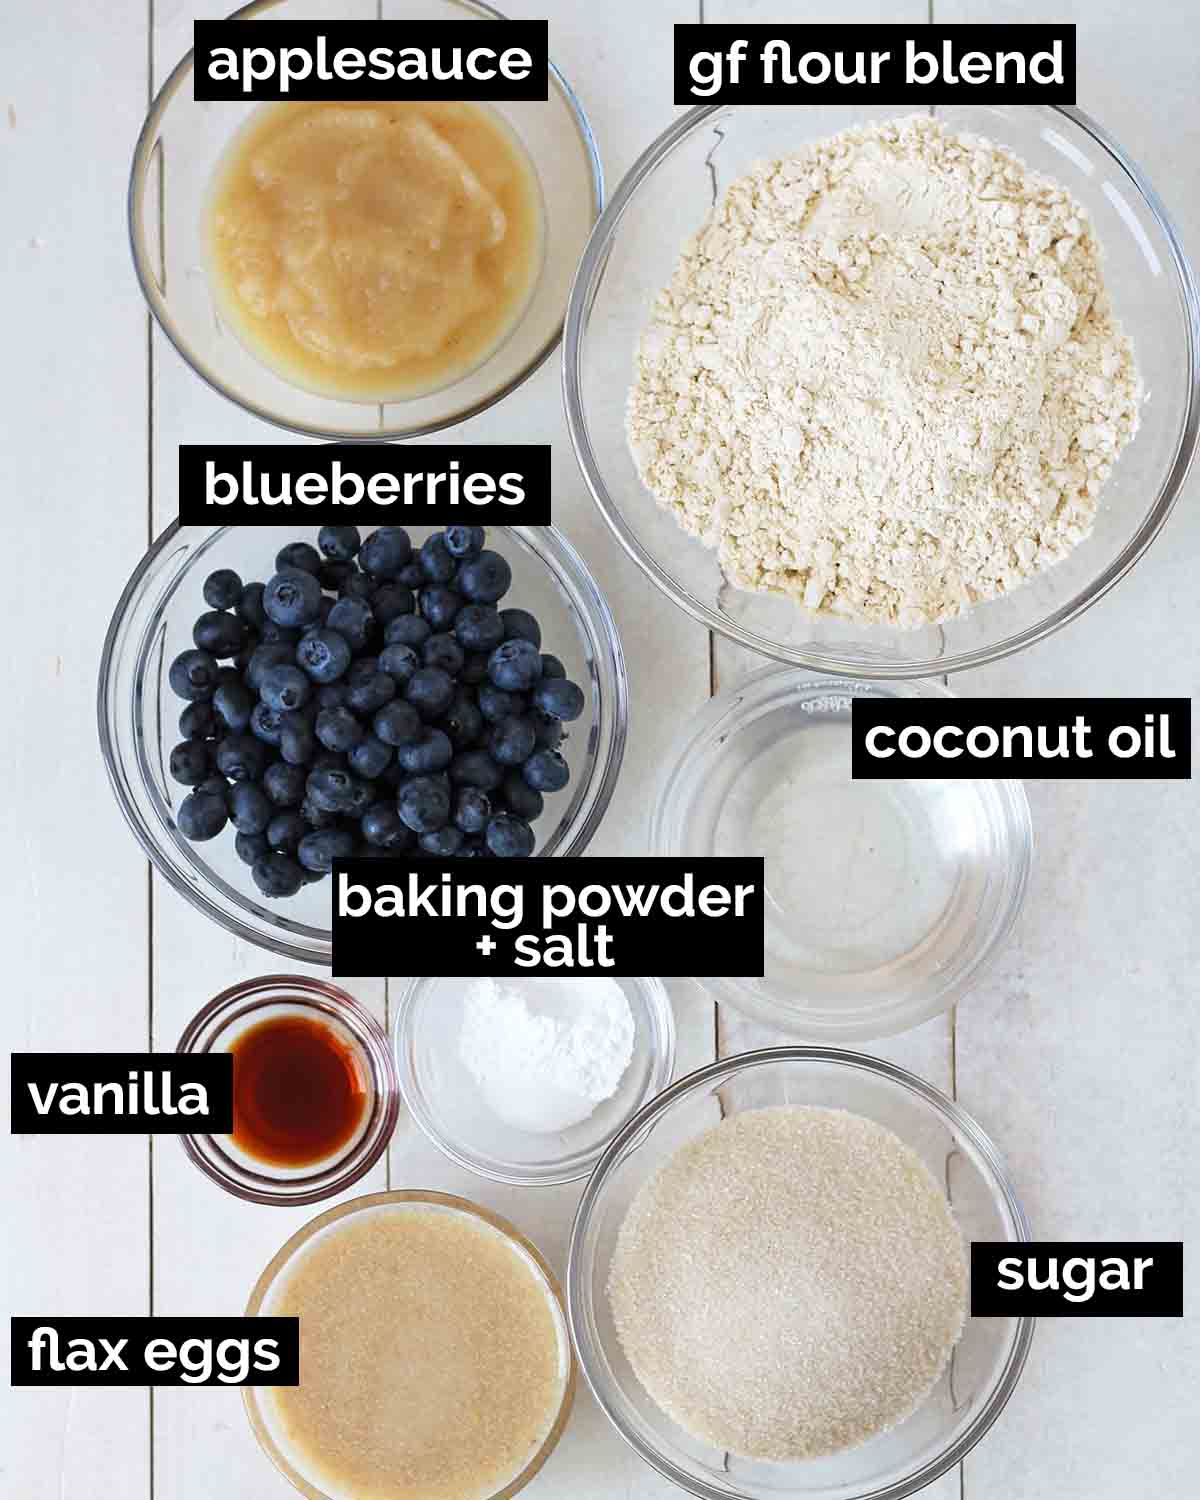 Overhead shot of the ingredients needed to make vegan gluten-free blueberry muffins. Each ingredient is labeled.